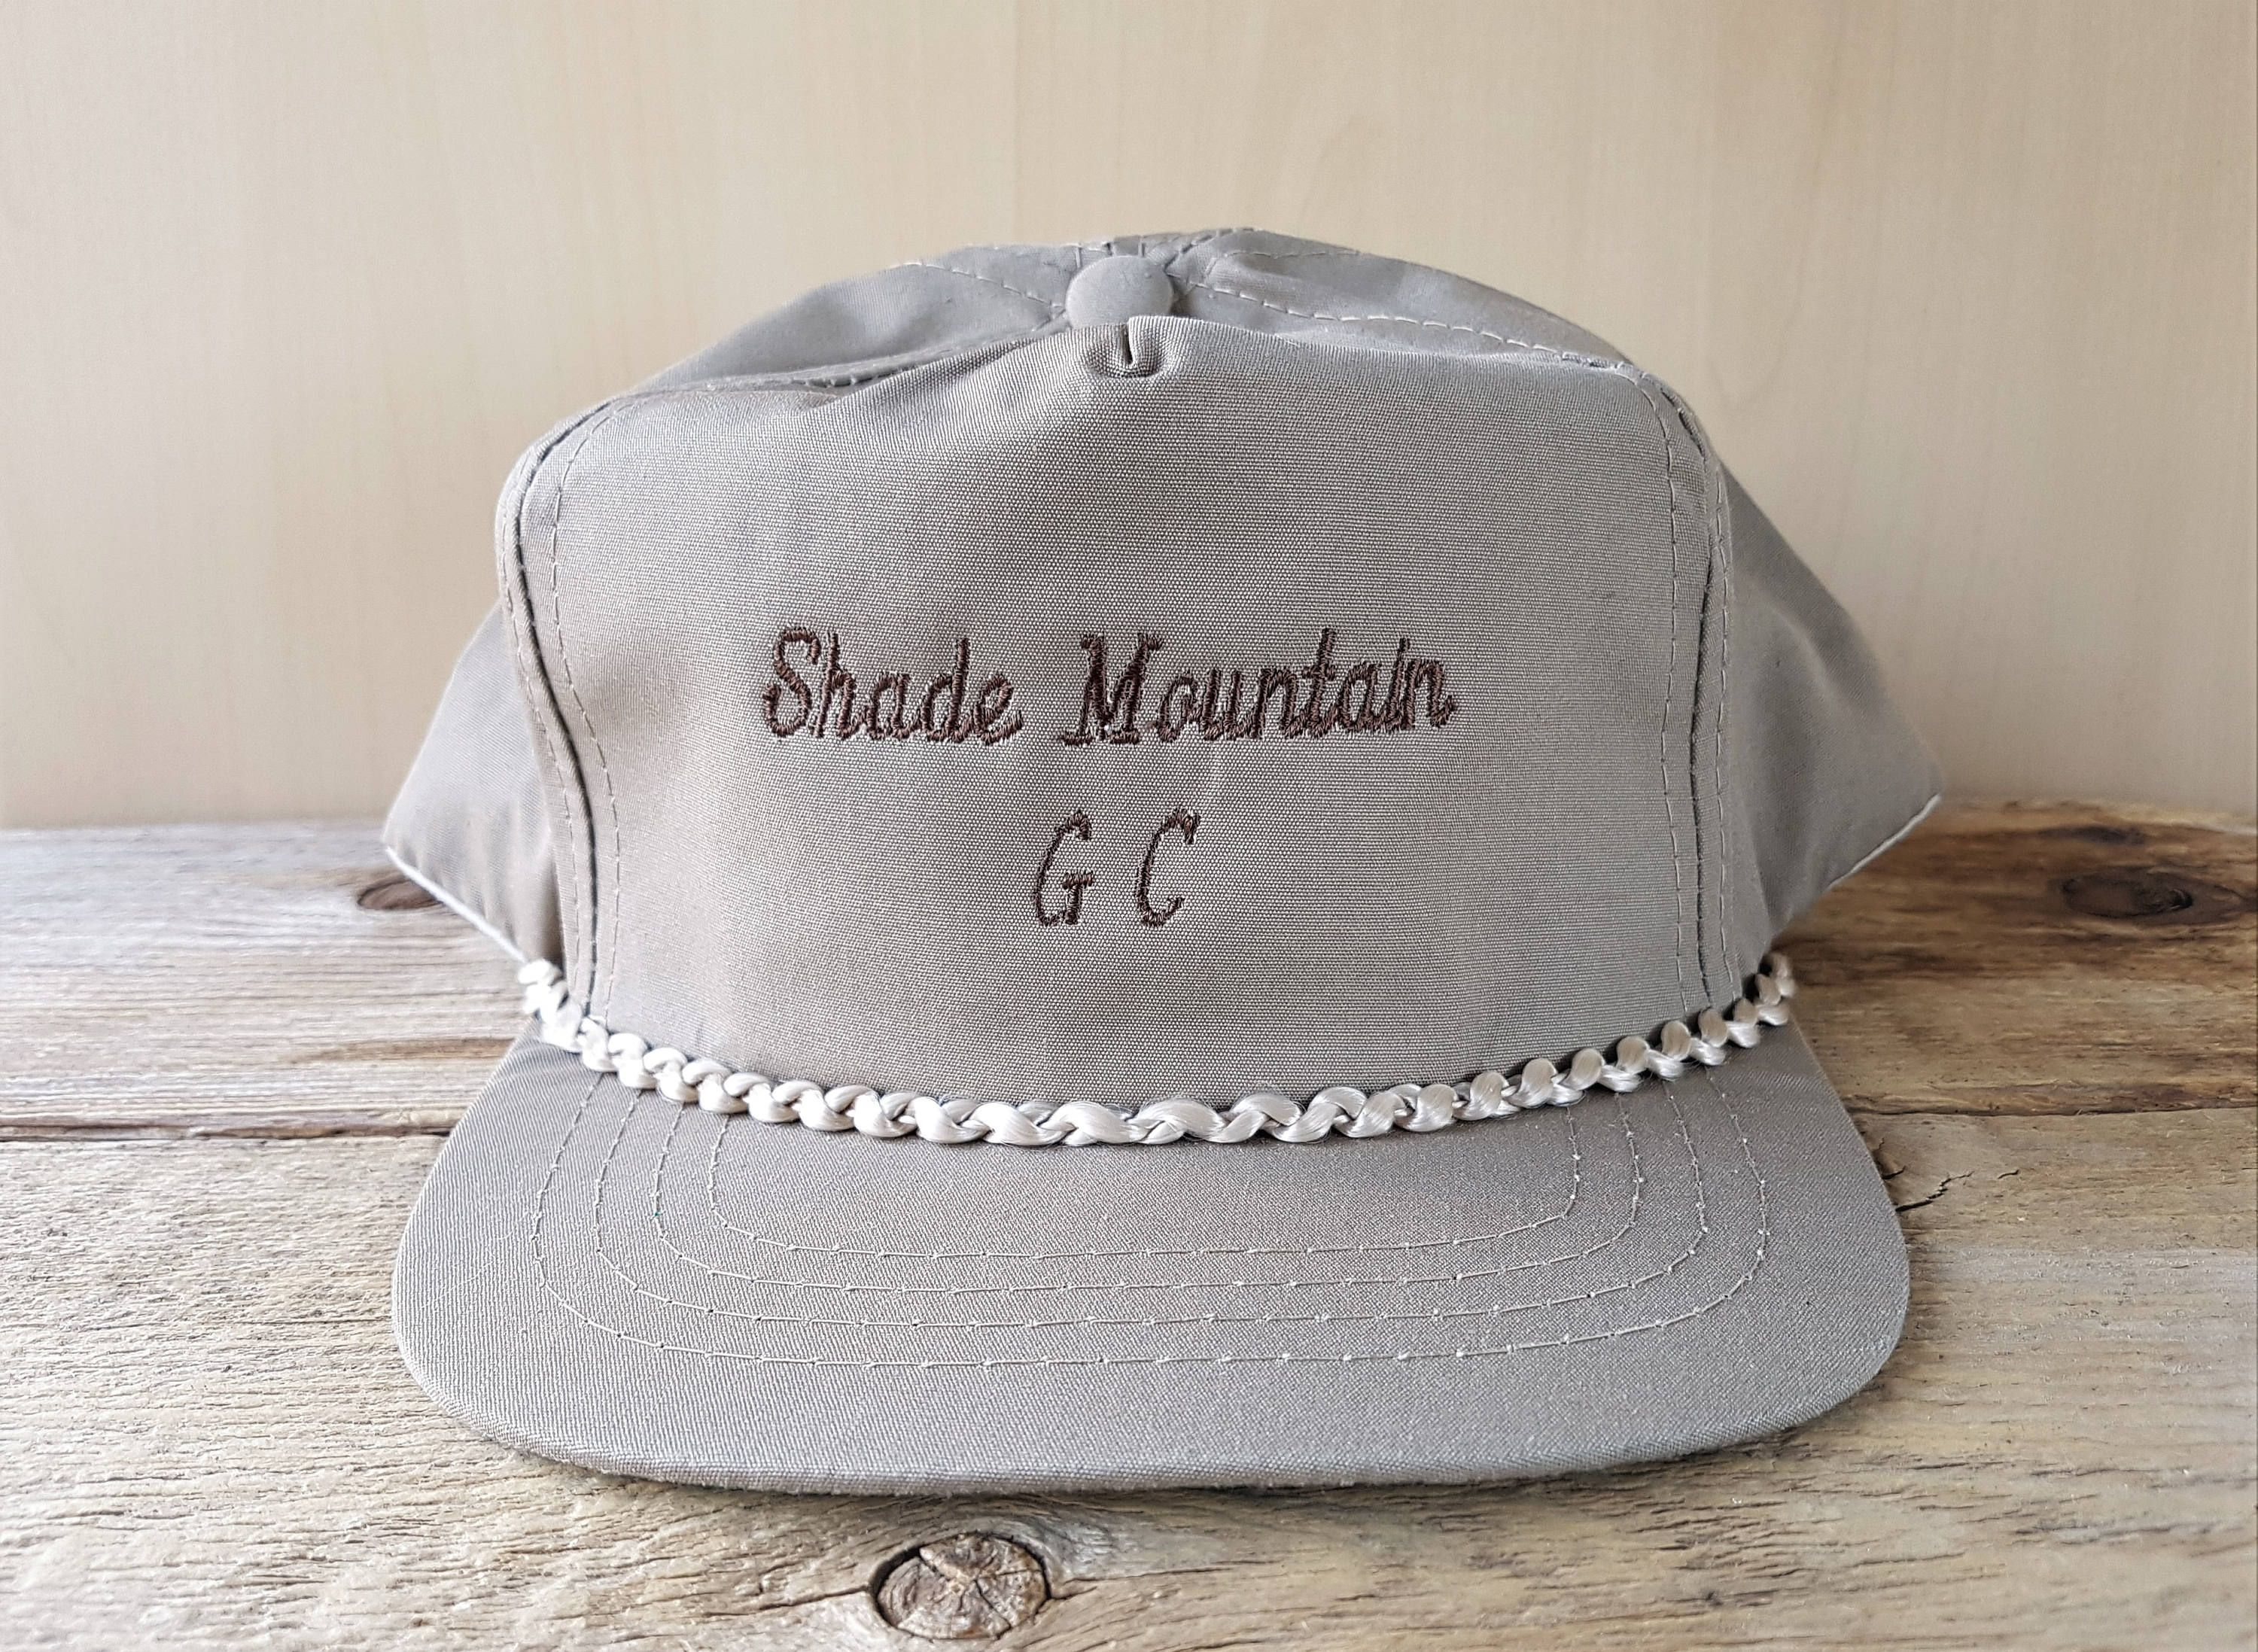 Shade Mountain Golf Course Vintage Taupe Colored Golfing Snapback Hat Rope Lined Town Talk Cap Pennsylvania Golf Country Club Souvenir In 2020 Taupe Color Taupe Snapback Hats